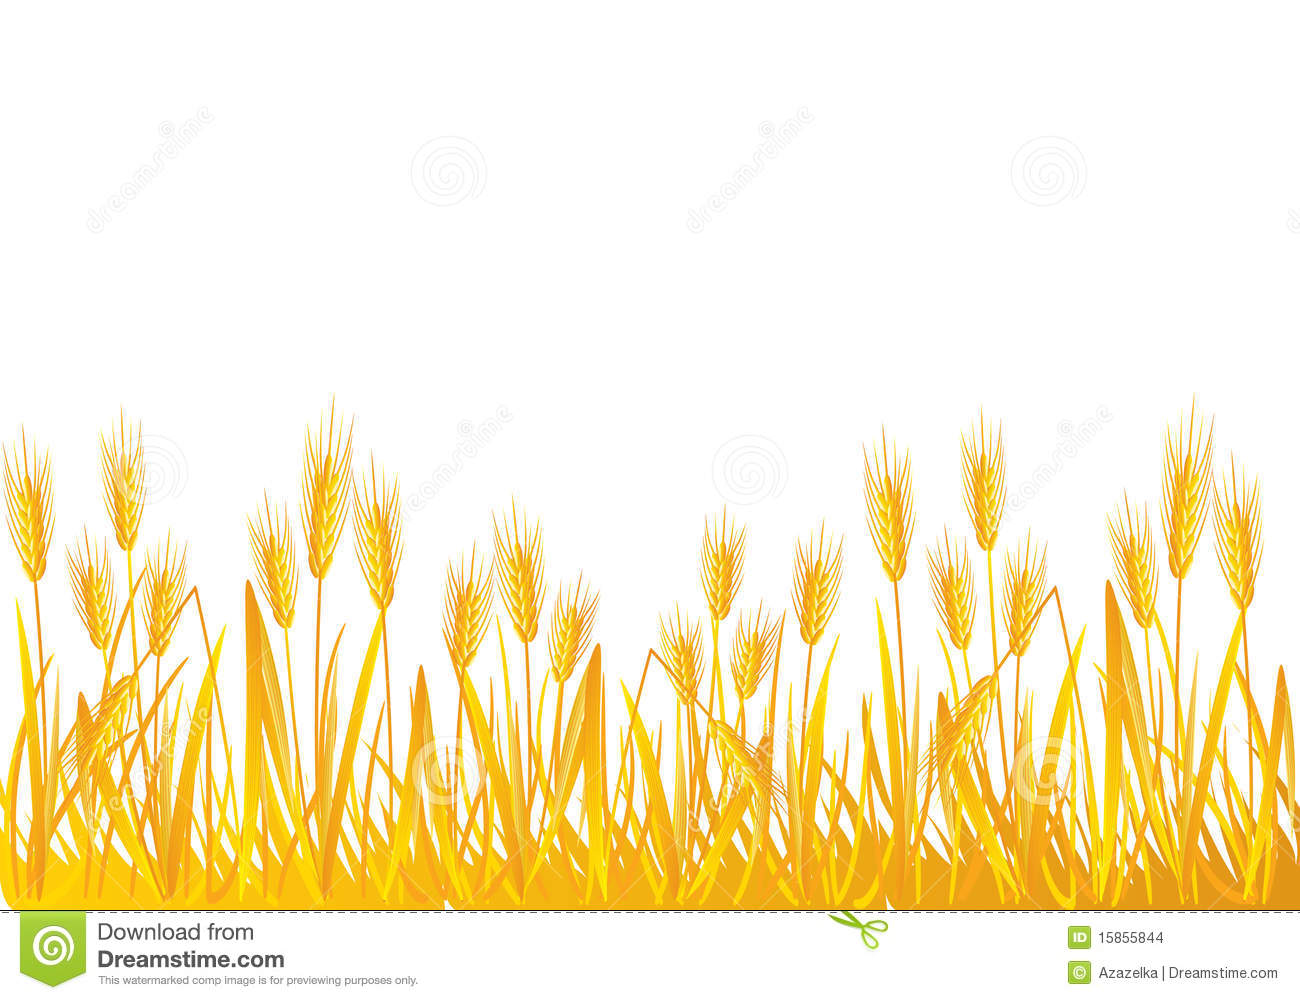 Wheat crop clipart.